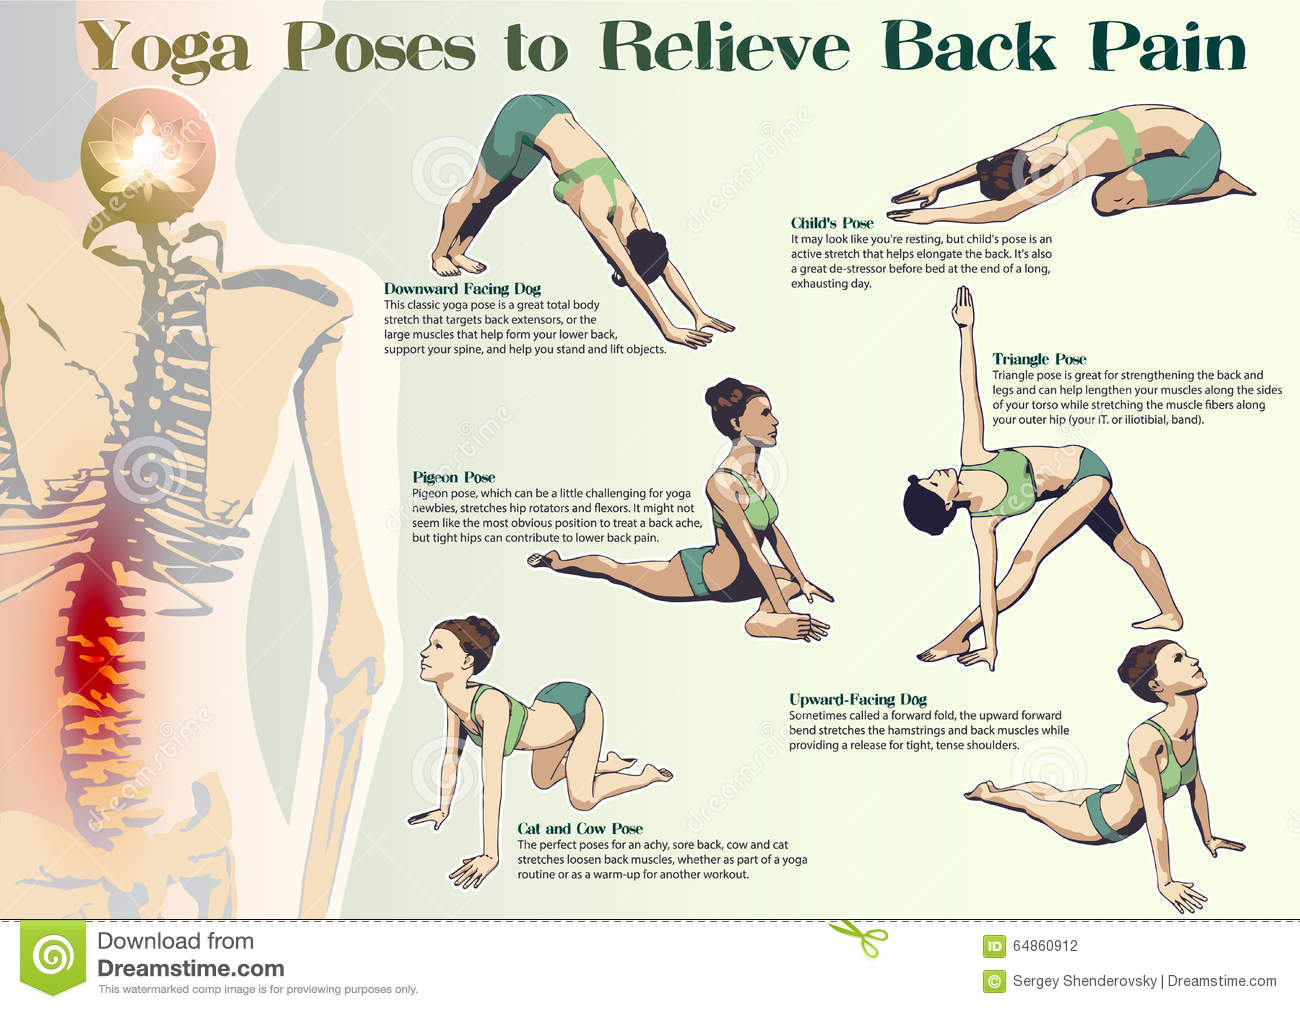 Yoga Poses To Relieve Back Pain Stock Vector - Image: 64860912